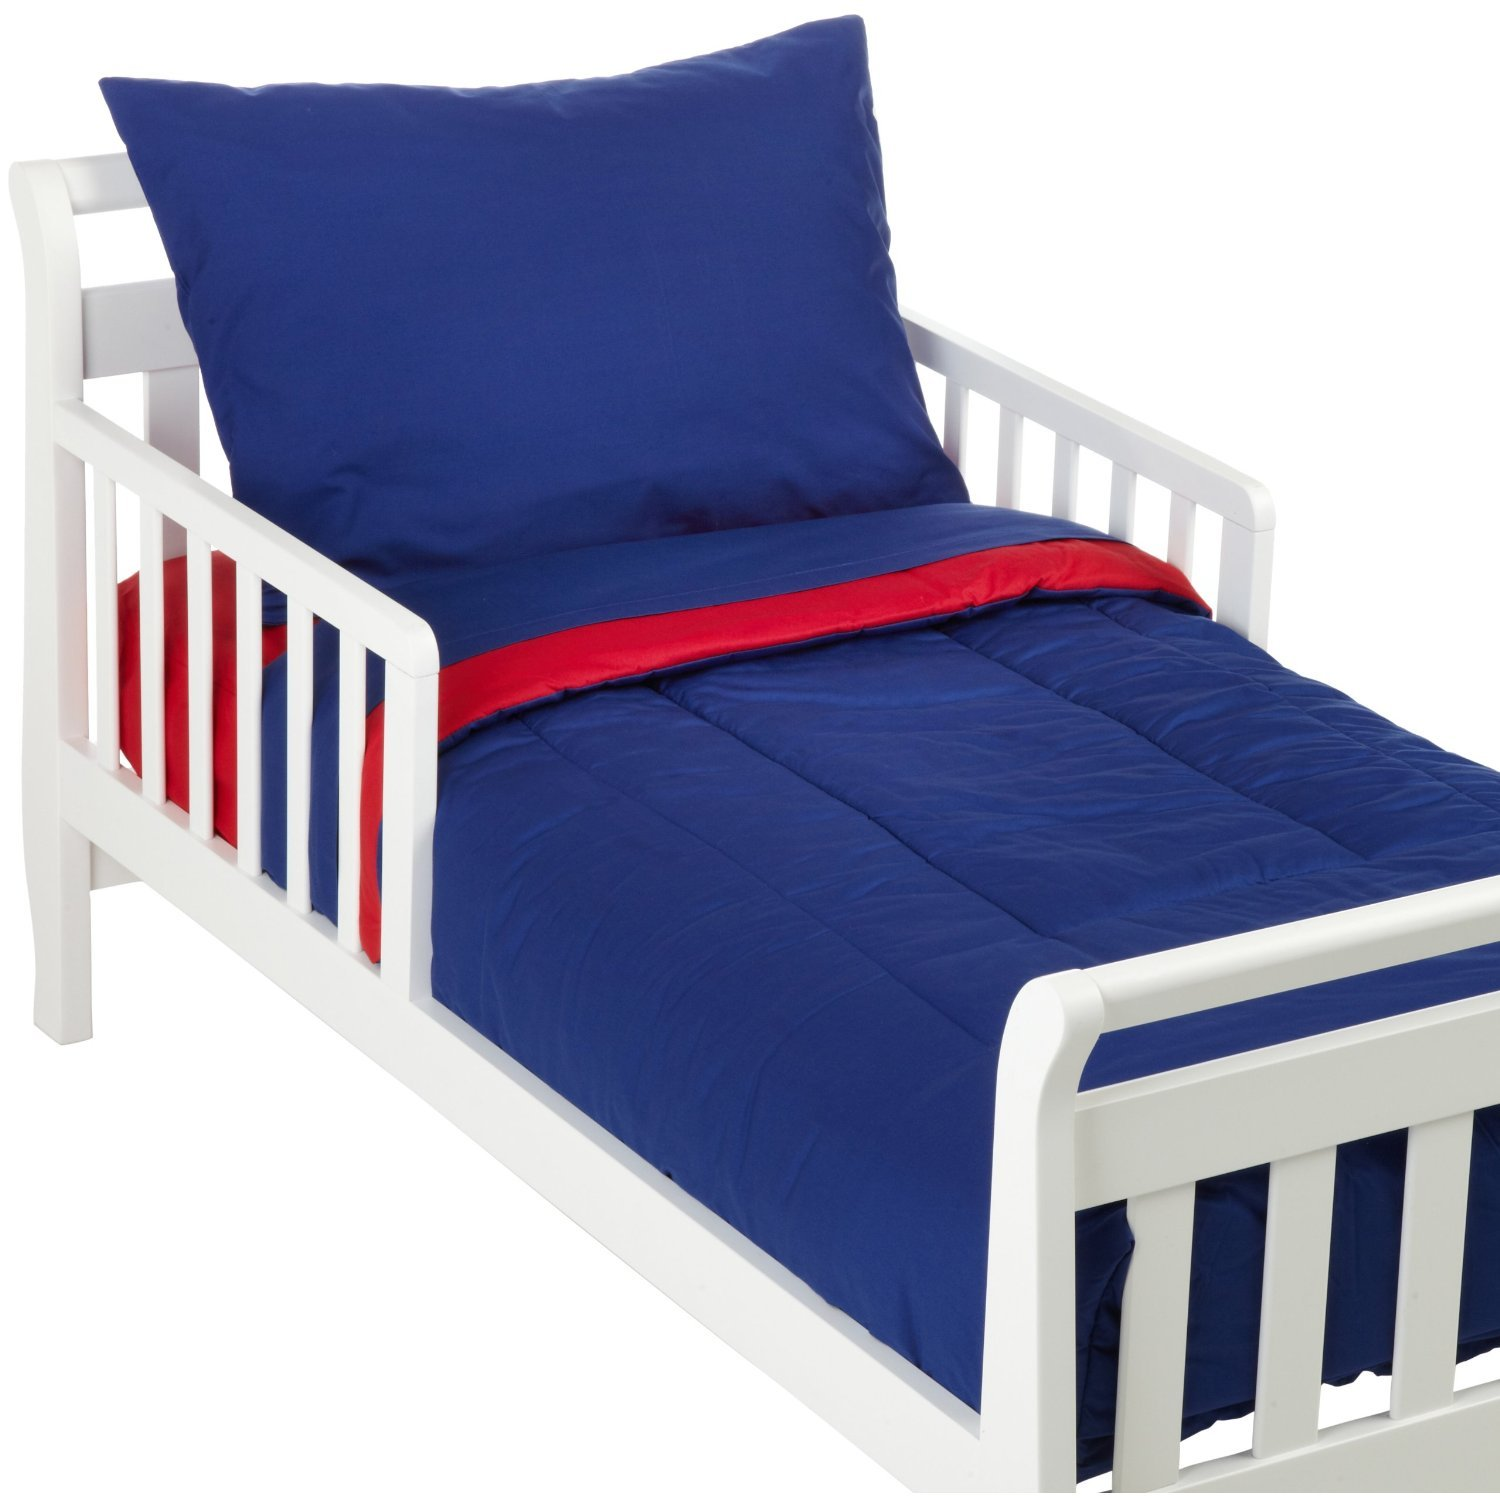 TL Care 100% Cotton Percale Toddler Bed Set, Royal, for Boys 1440-RY